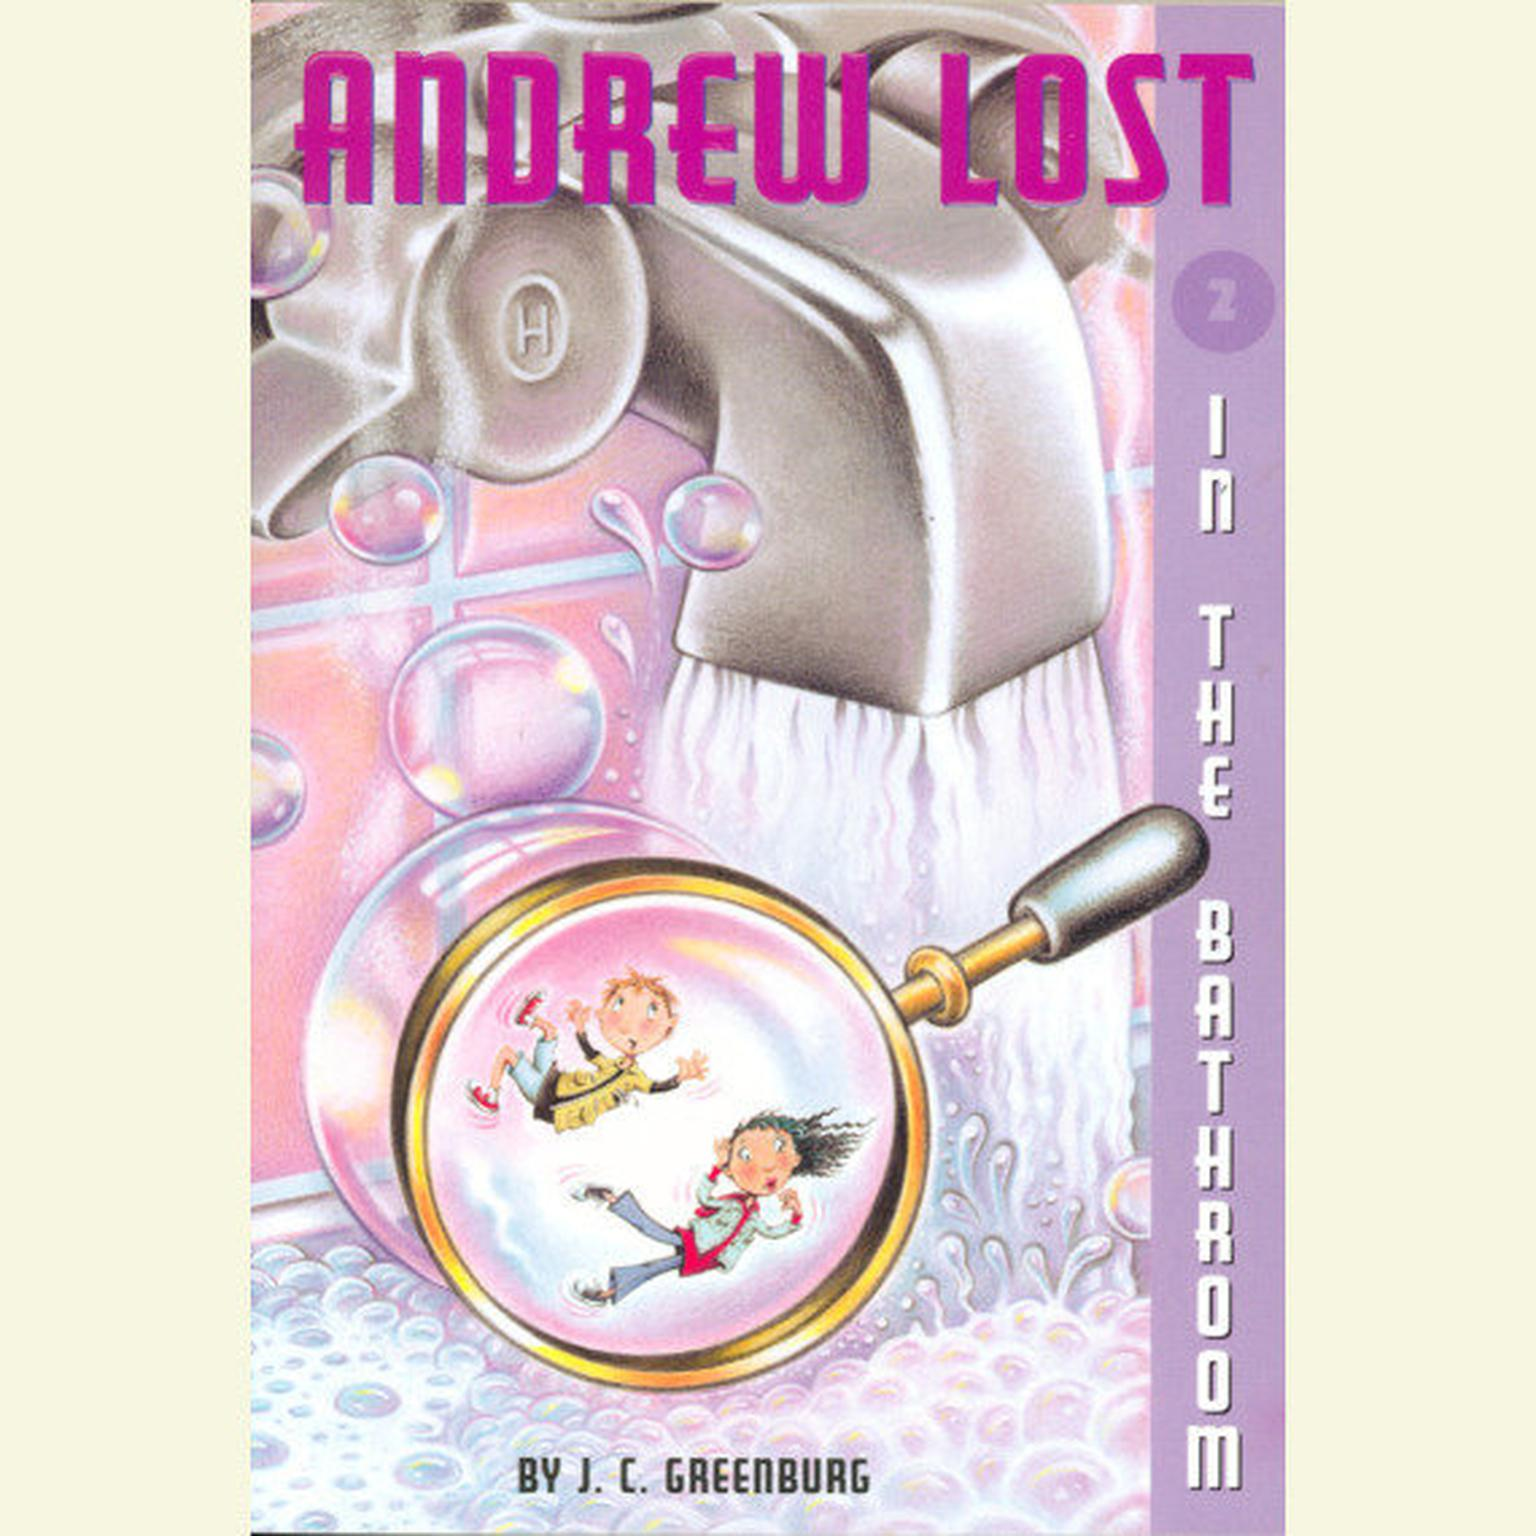 Printable In the Bathroom: Andrew Lost #2 Audiobook Cover Art